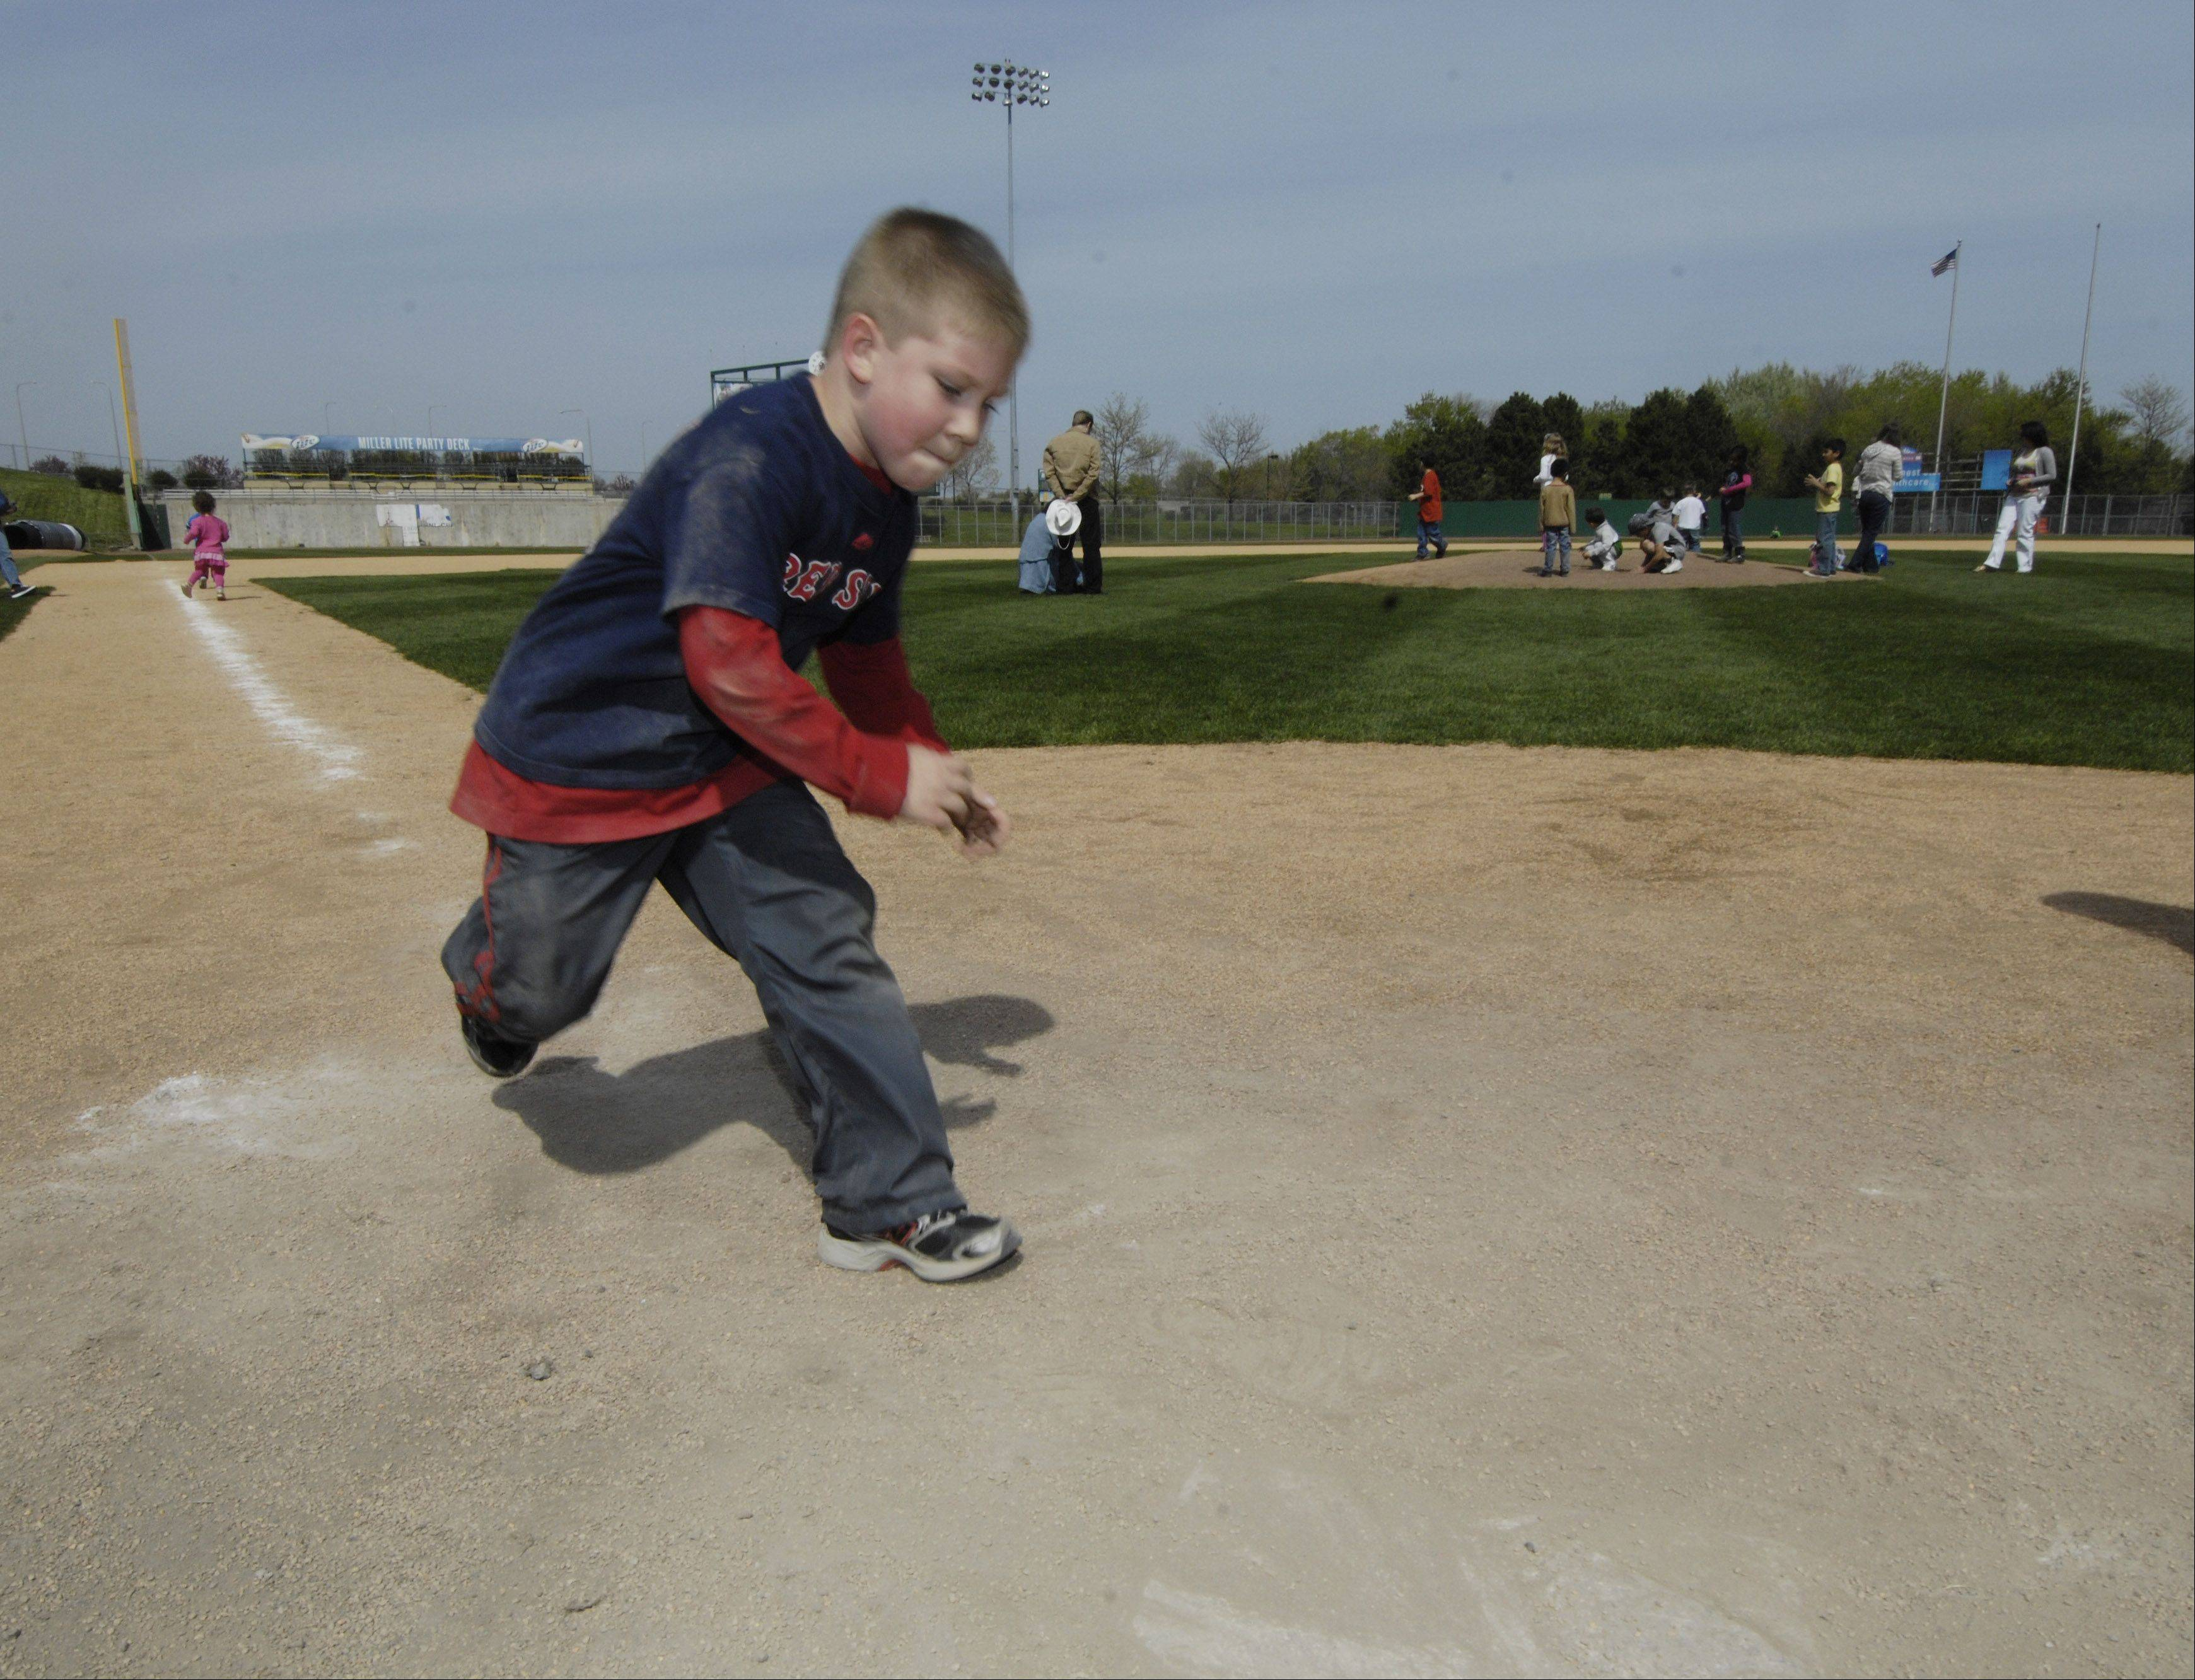 Ryan Mc Grew, 5, of South Elgin tumbles into home plate after running the bases during the Schaumburg Boomers baseball team open house Saturday.